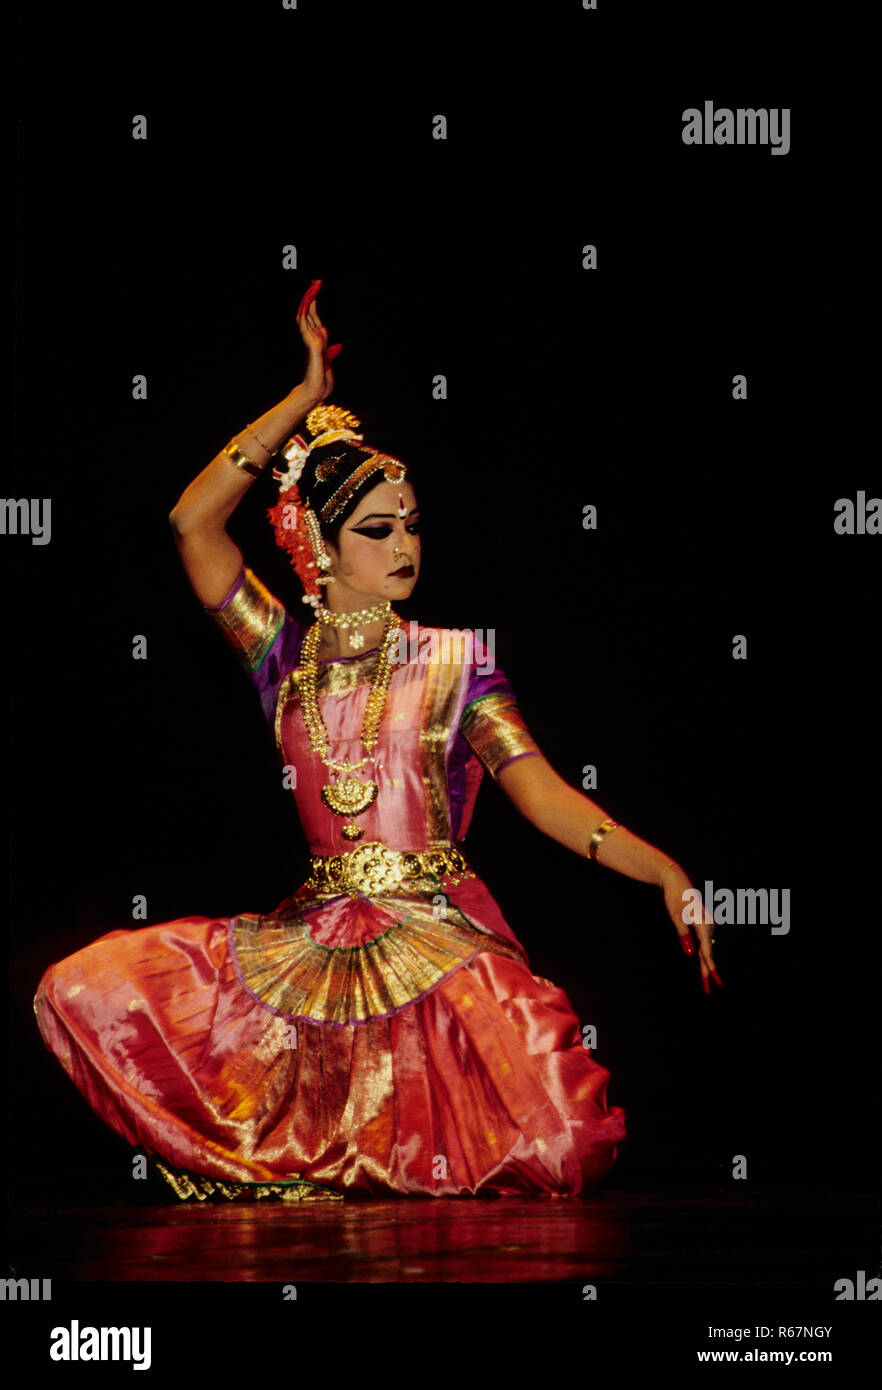 Kuchipudi Dance High Resolution Stock Photography And Images Alamy